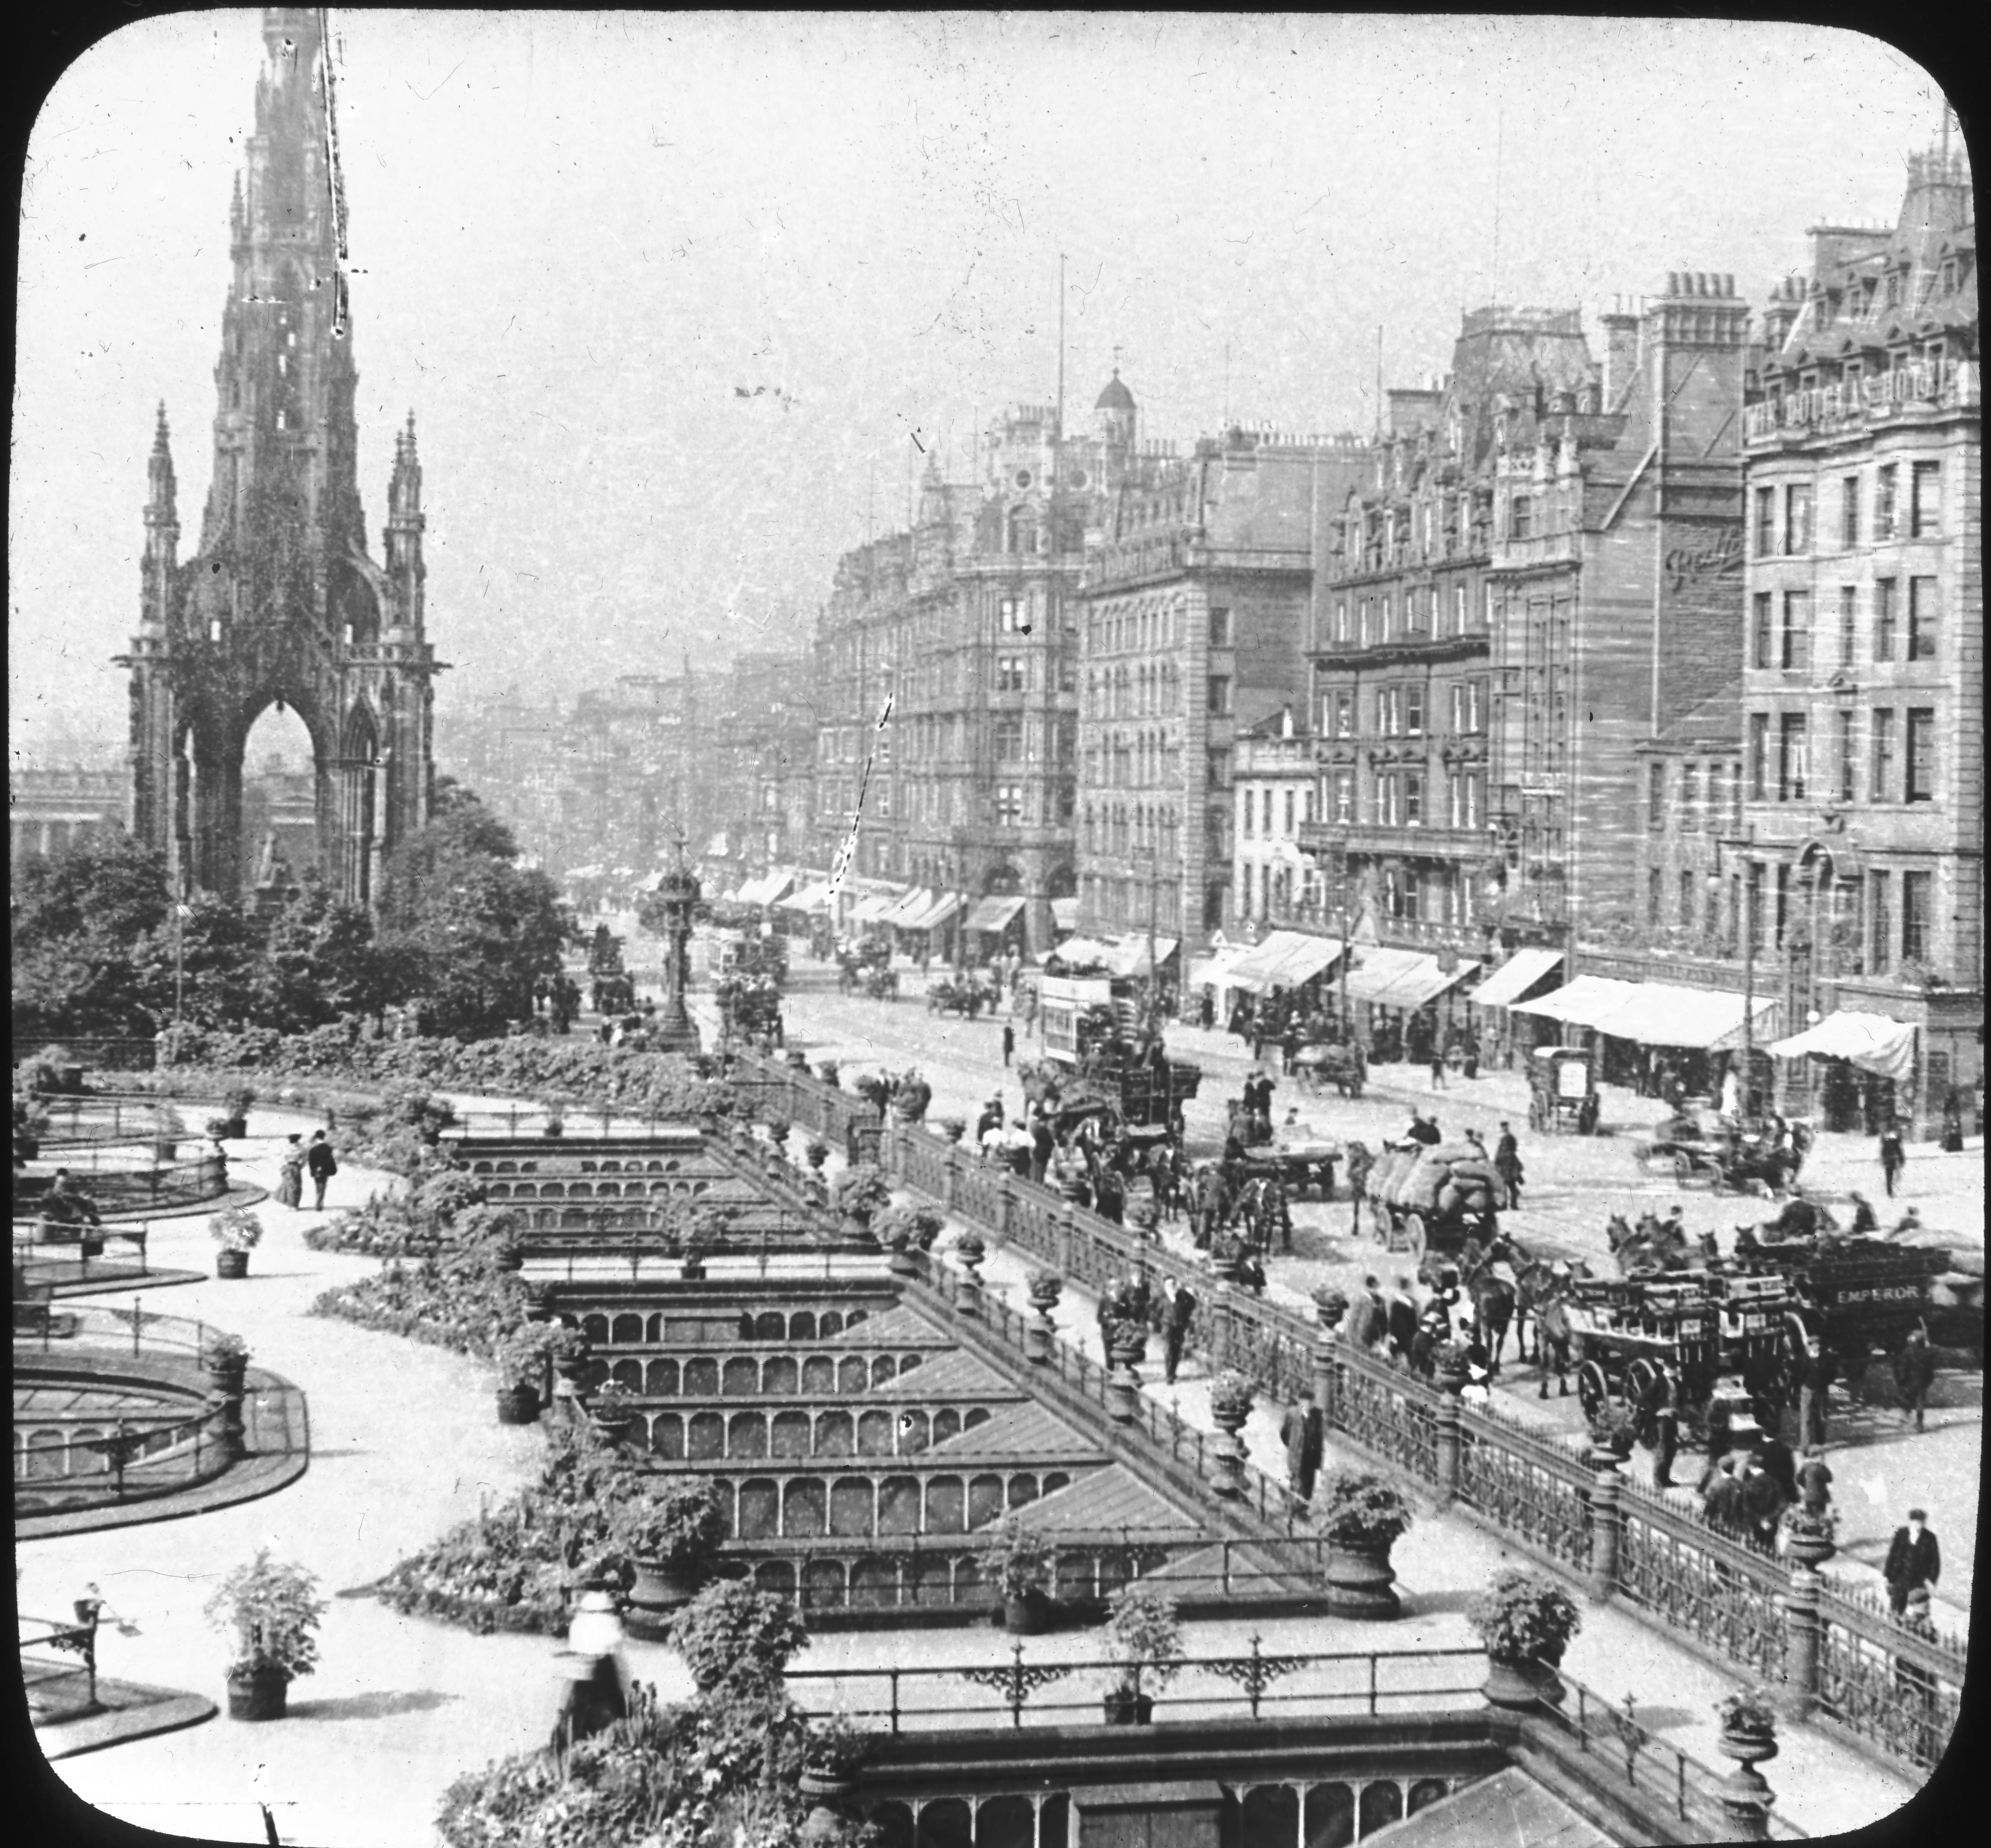 Princess Street, and Waverly Gardens, Edinburg, Scotland.